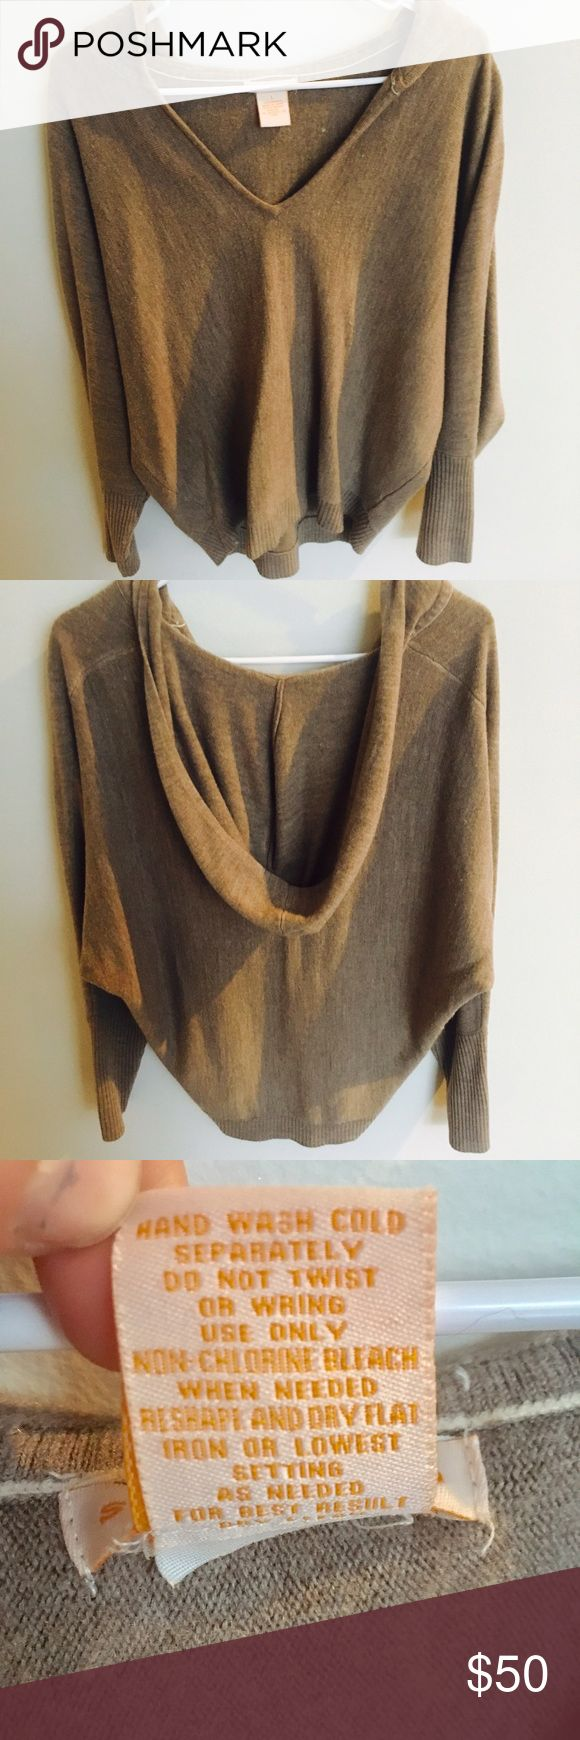 Women's cashmere sweater with hood Women's Large cashmere sweater with hood. In excellent condition, worn only a few times. Sweet Romeo Sweaters Crew & Scoop Necks